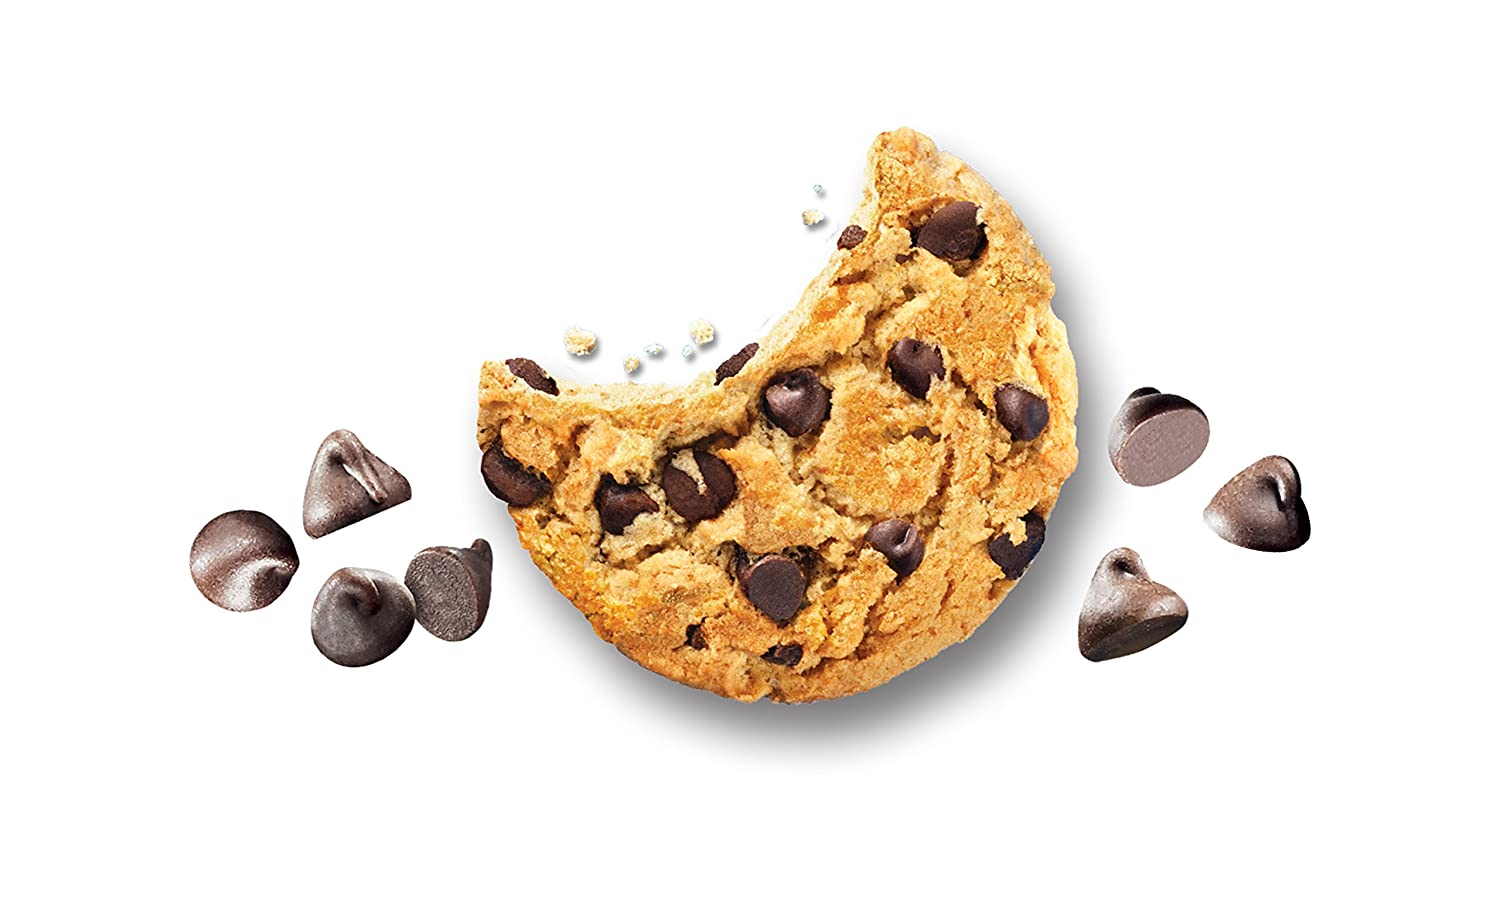 Chips Ahoy! Original Chocolate Chip Cookies - Family Size, 18 2 Ounce